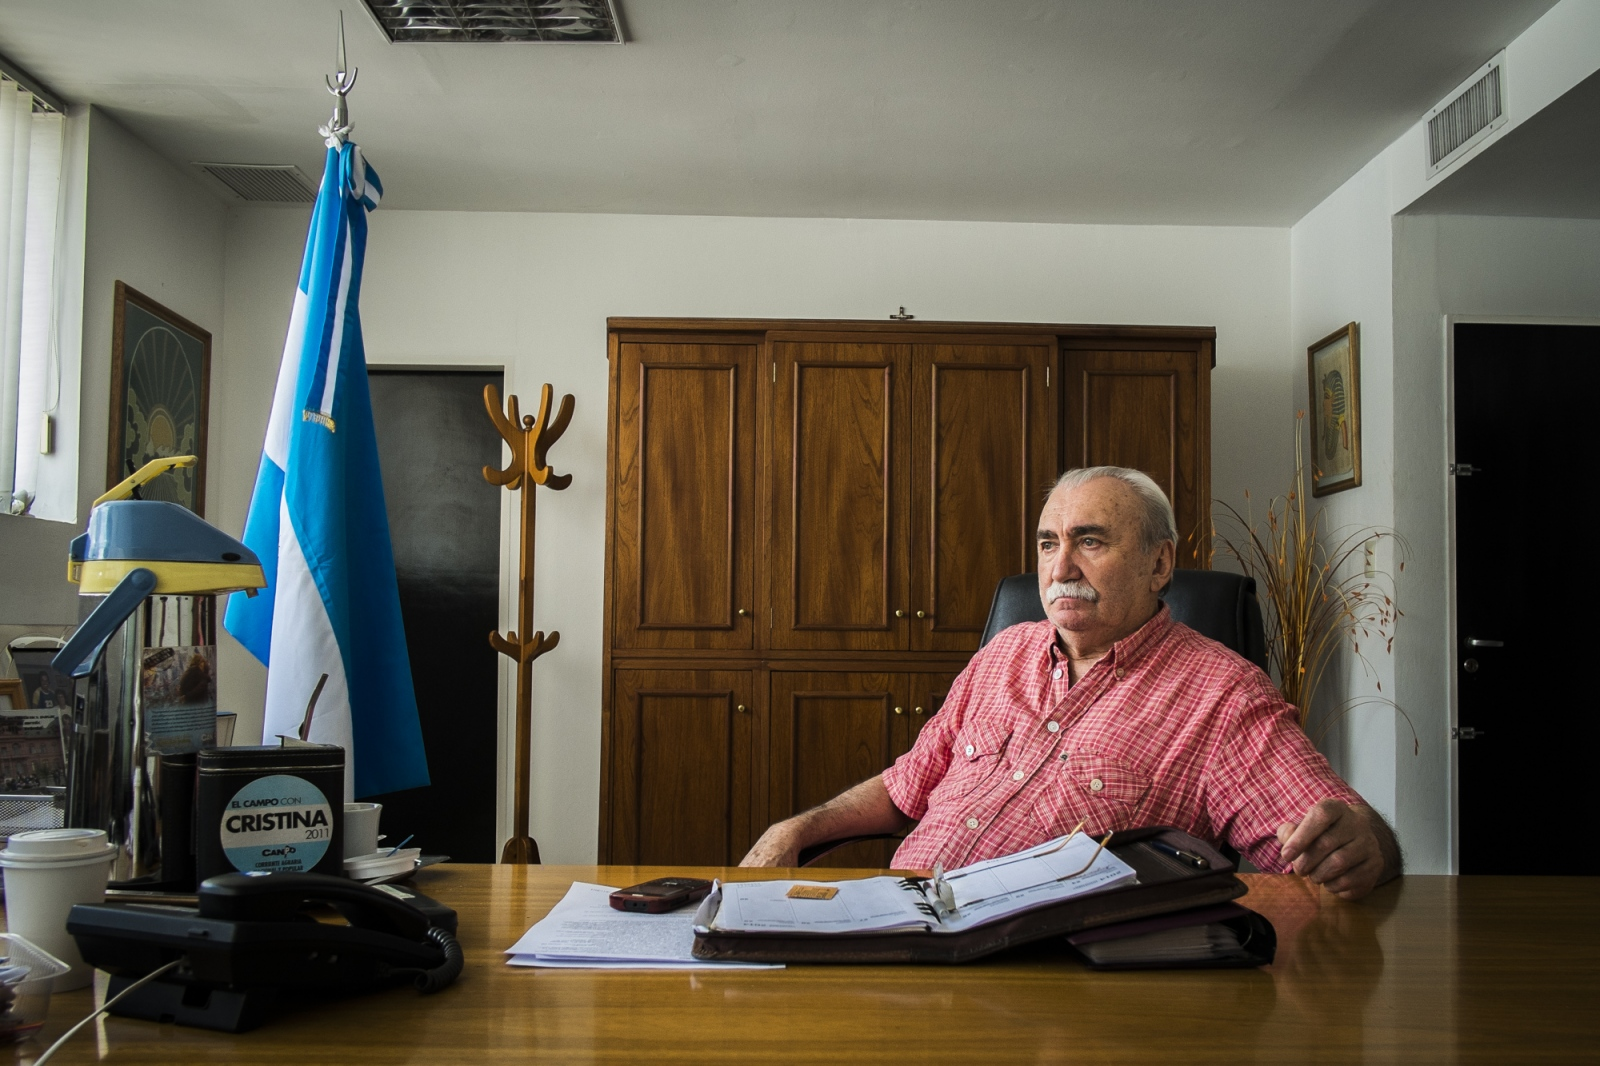 Mayor of Monte Maiz, Dr. Luís Maria Trotte, a former paediatrician, in his office in the Town Hall. The mayor said he has a plan to move and forbid the parking of pulverization machines and agro-chemicals inside the town. He is waiting for the confirmation that the pesticides are the cause of such growth of cancer cases in Monte Maiz. Dr. Luís Maria Trotte was also diagnosed with cancer.